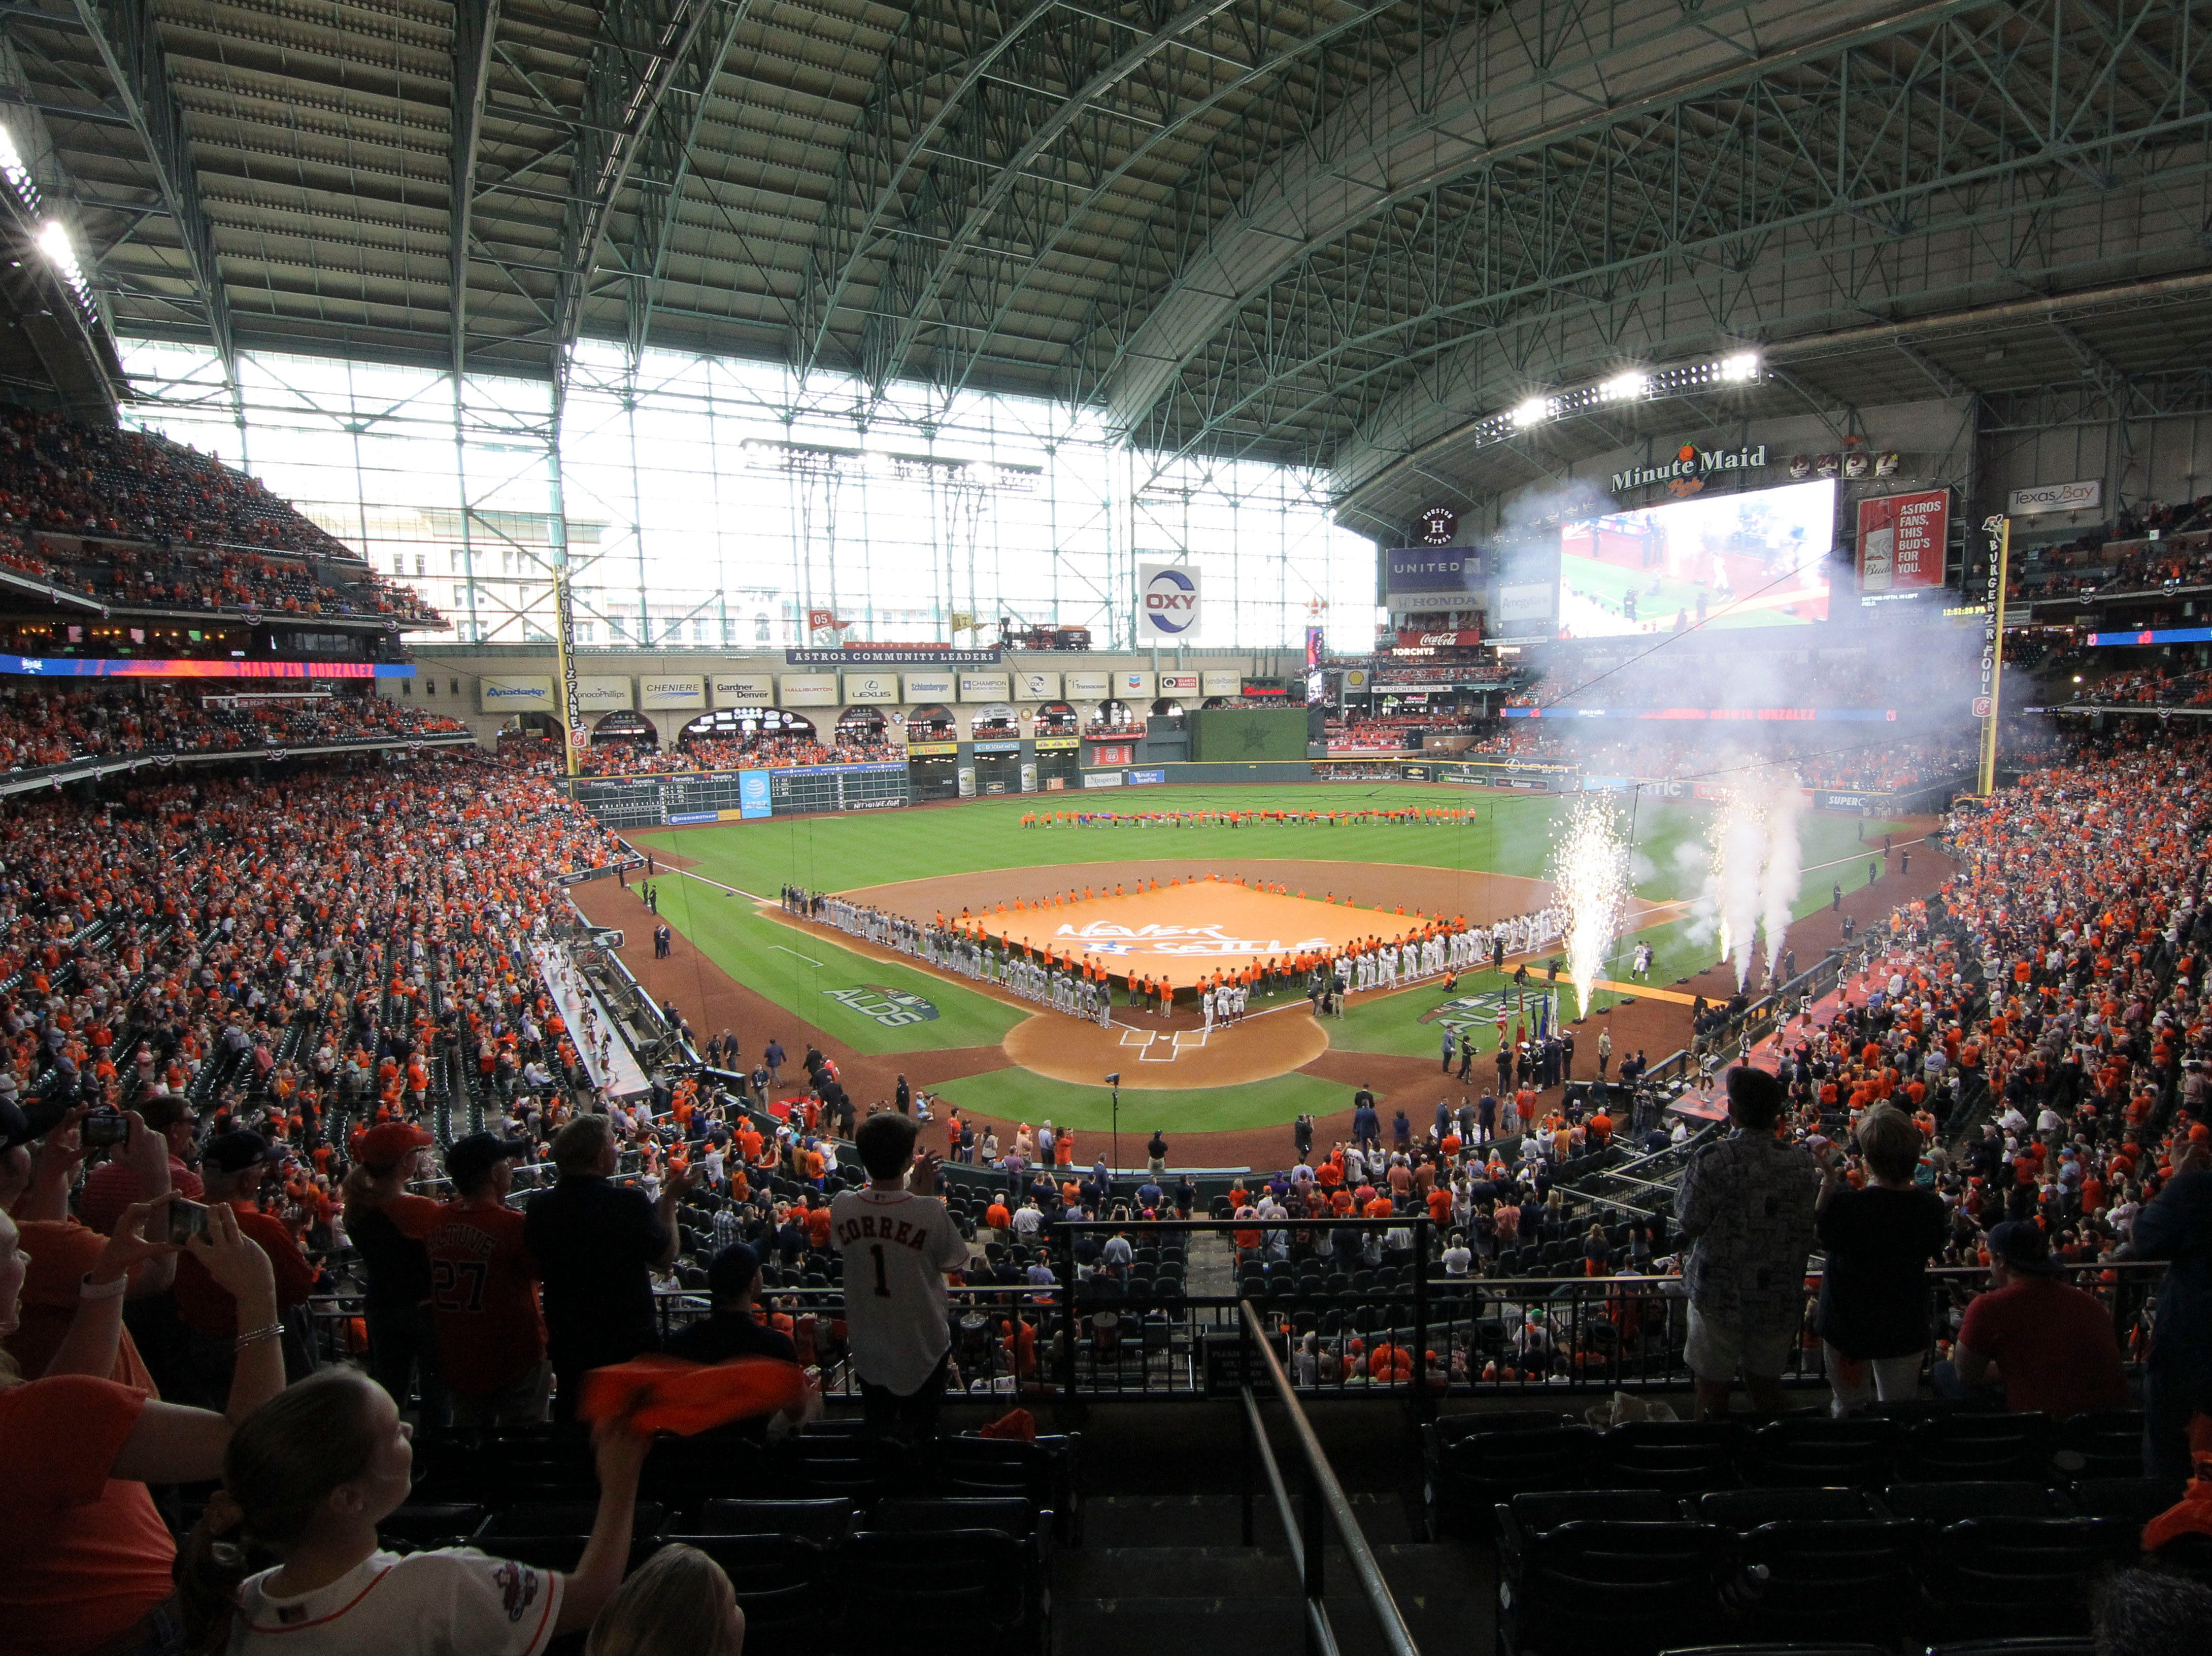 ALDS Game 1: The teams line up before the game at Minute Maid Park.